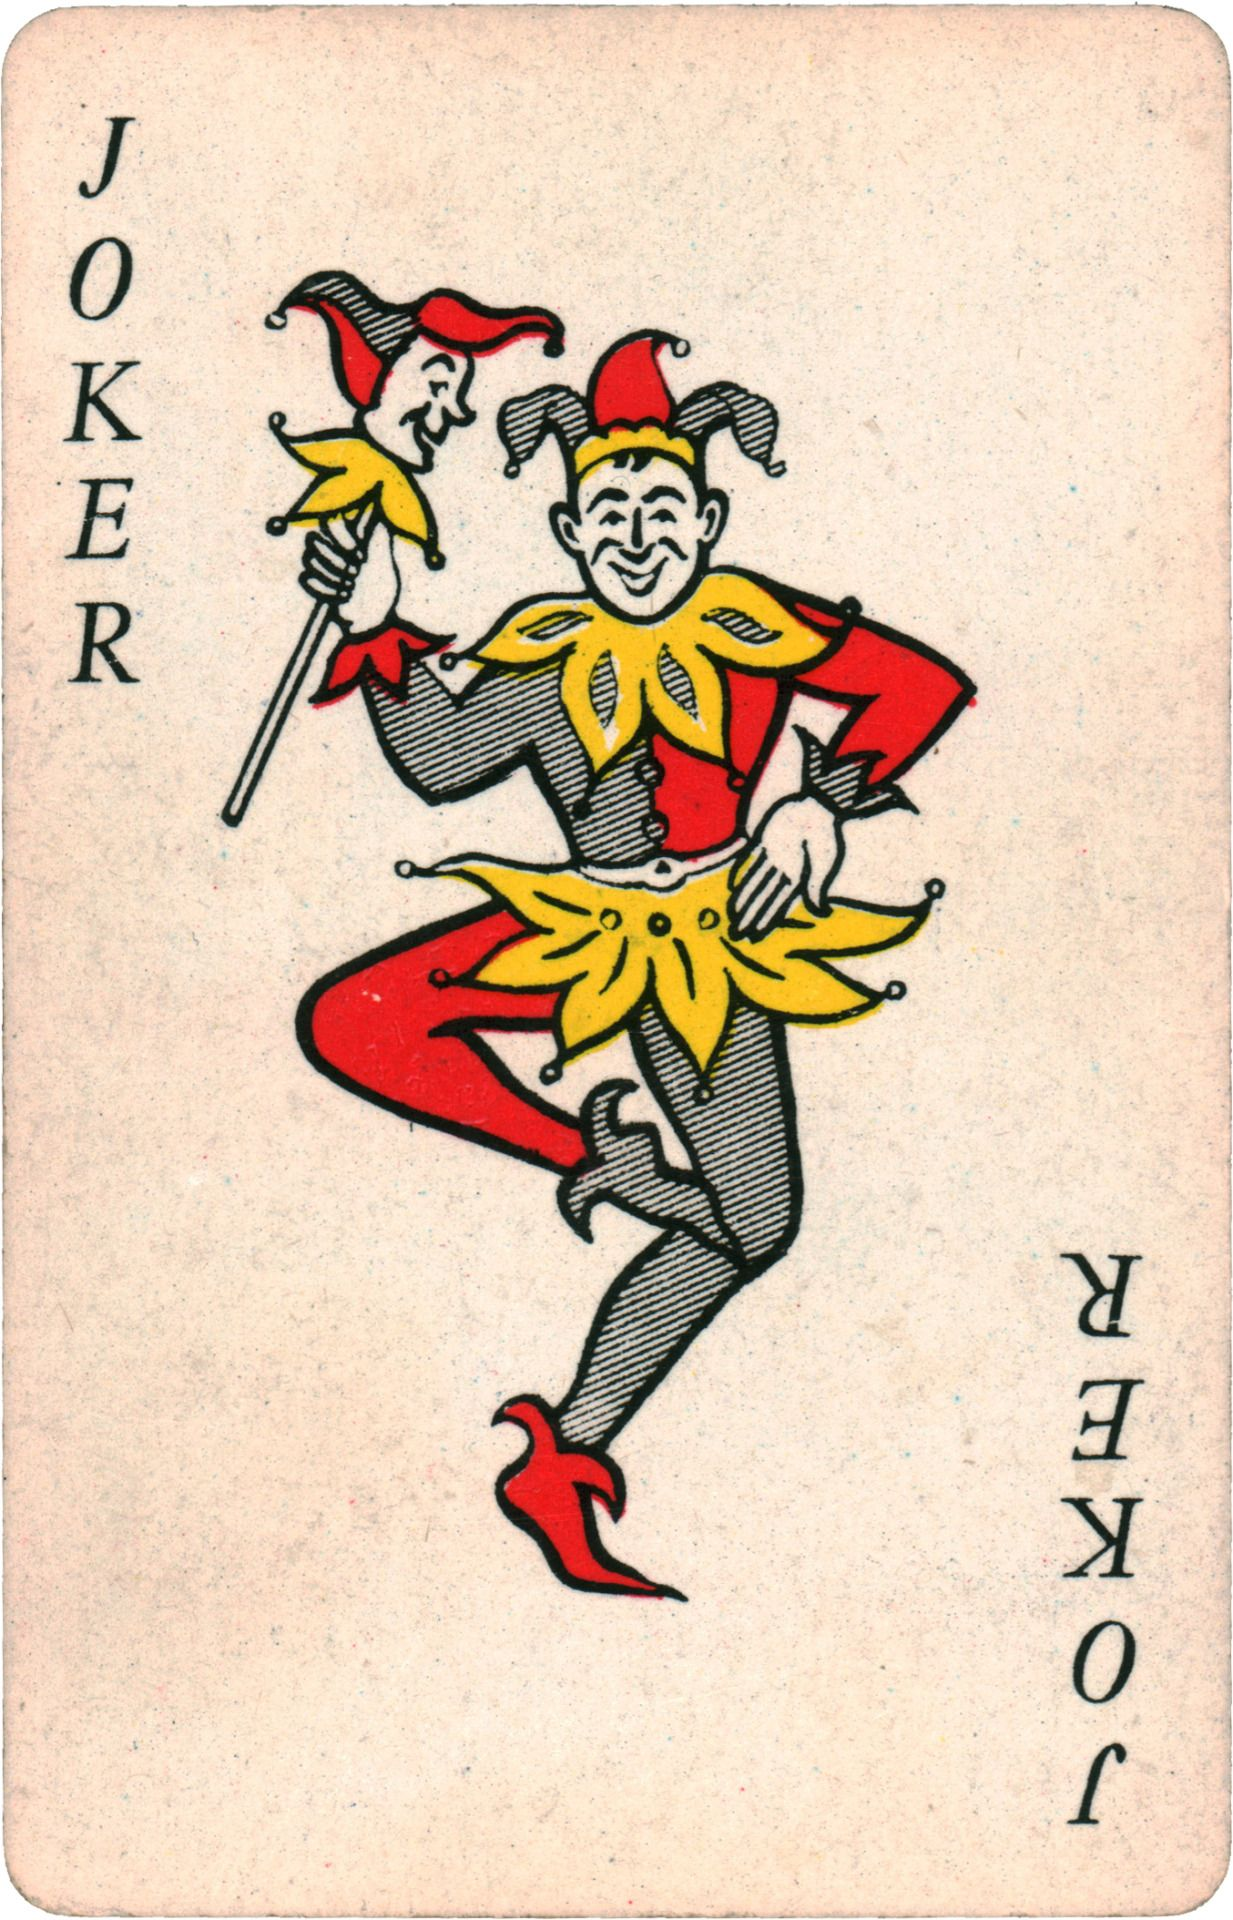 Joker of the Day in 2020 Joker playing card, Joker card